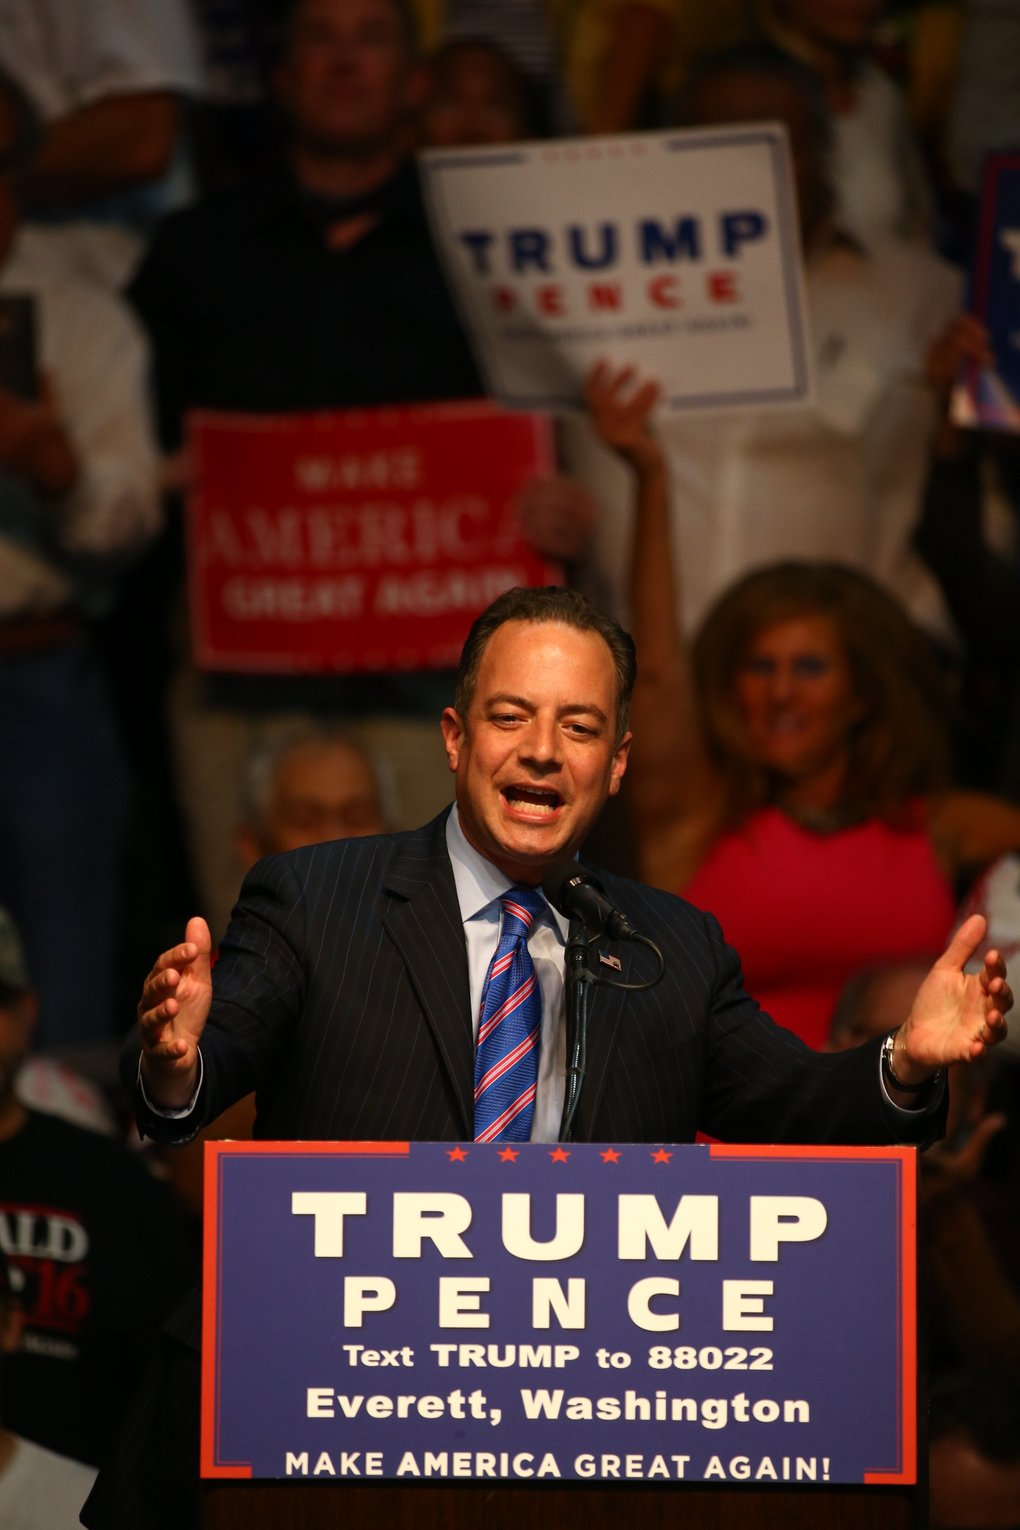 Reince Priebus, Republican National Committee chair, speaks before Donald Trump's appearance Tuesday night. (Dean Rutz / The Seattle Times)